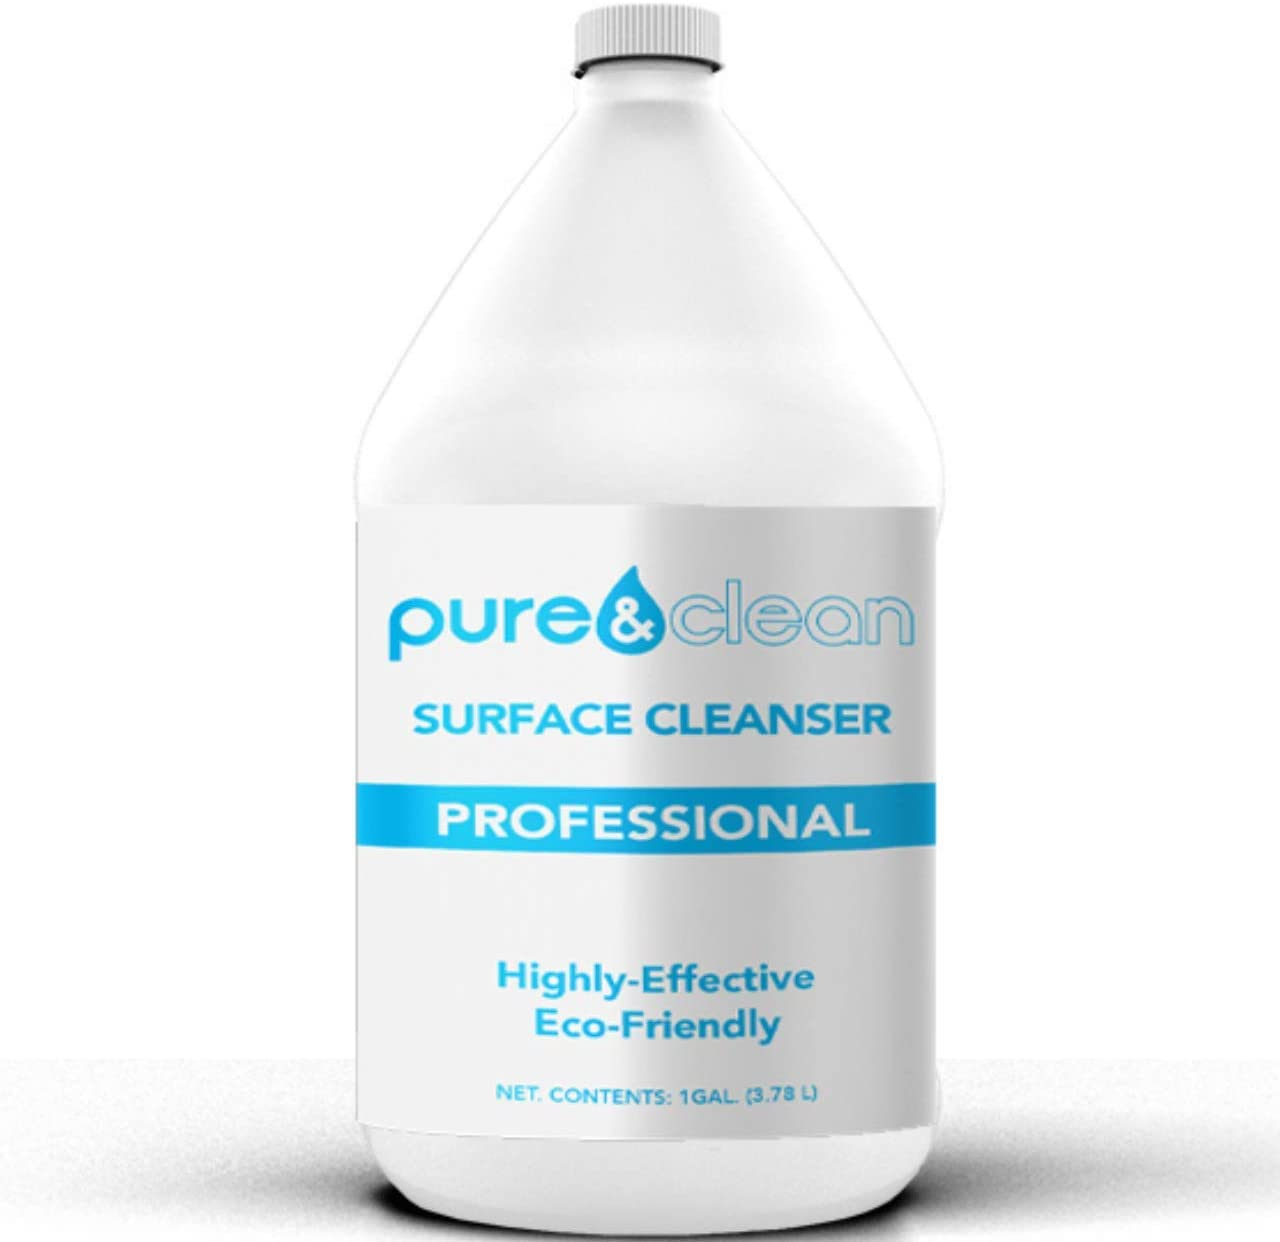 Pure & Clean Multi Surface Cleaner PRO - Hypochlorous Acid Cleaning Solution - Powerful & Non-Toxic - Used by Medical Professionals & Facilities - Electrolyzed Water & HOCl Formula (1 Gallon)